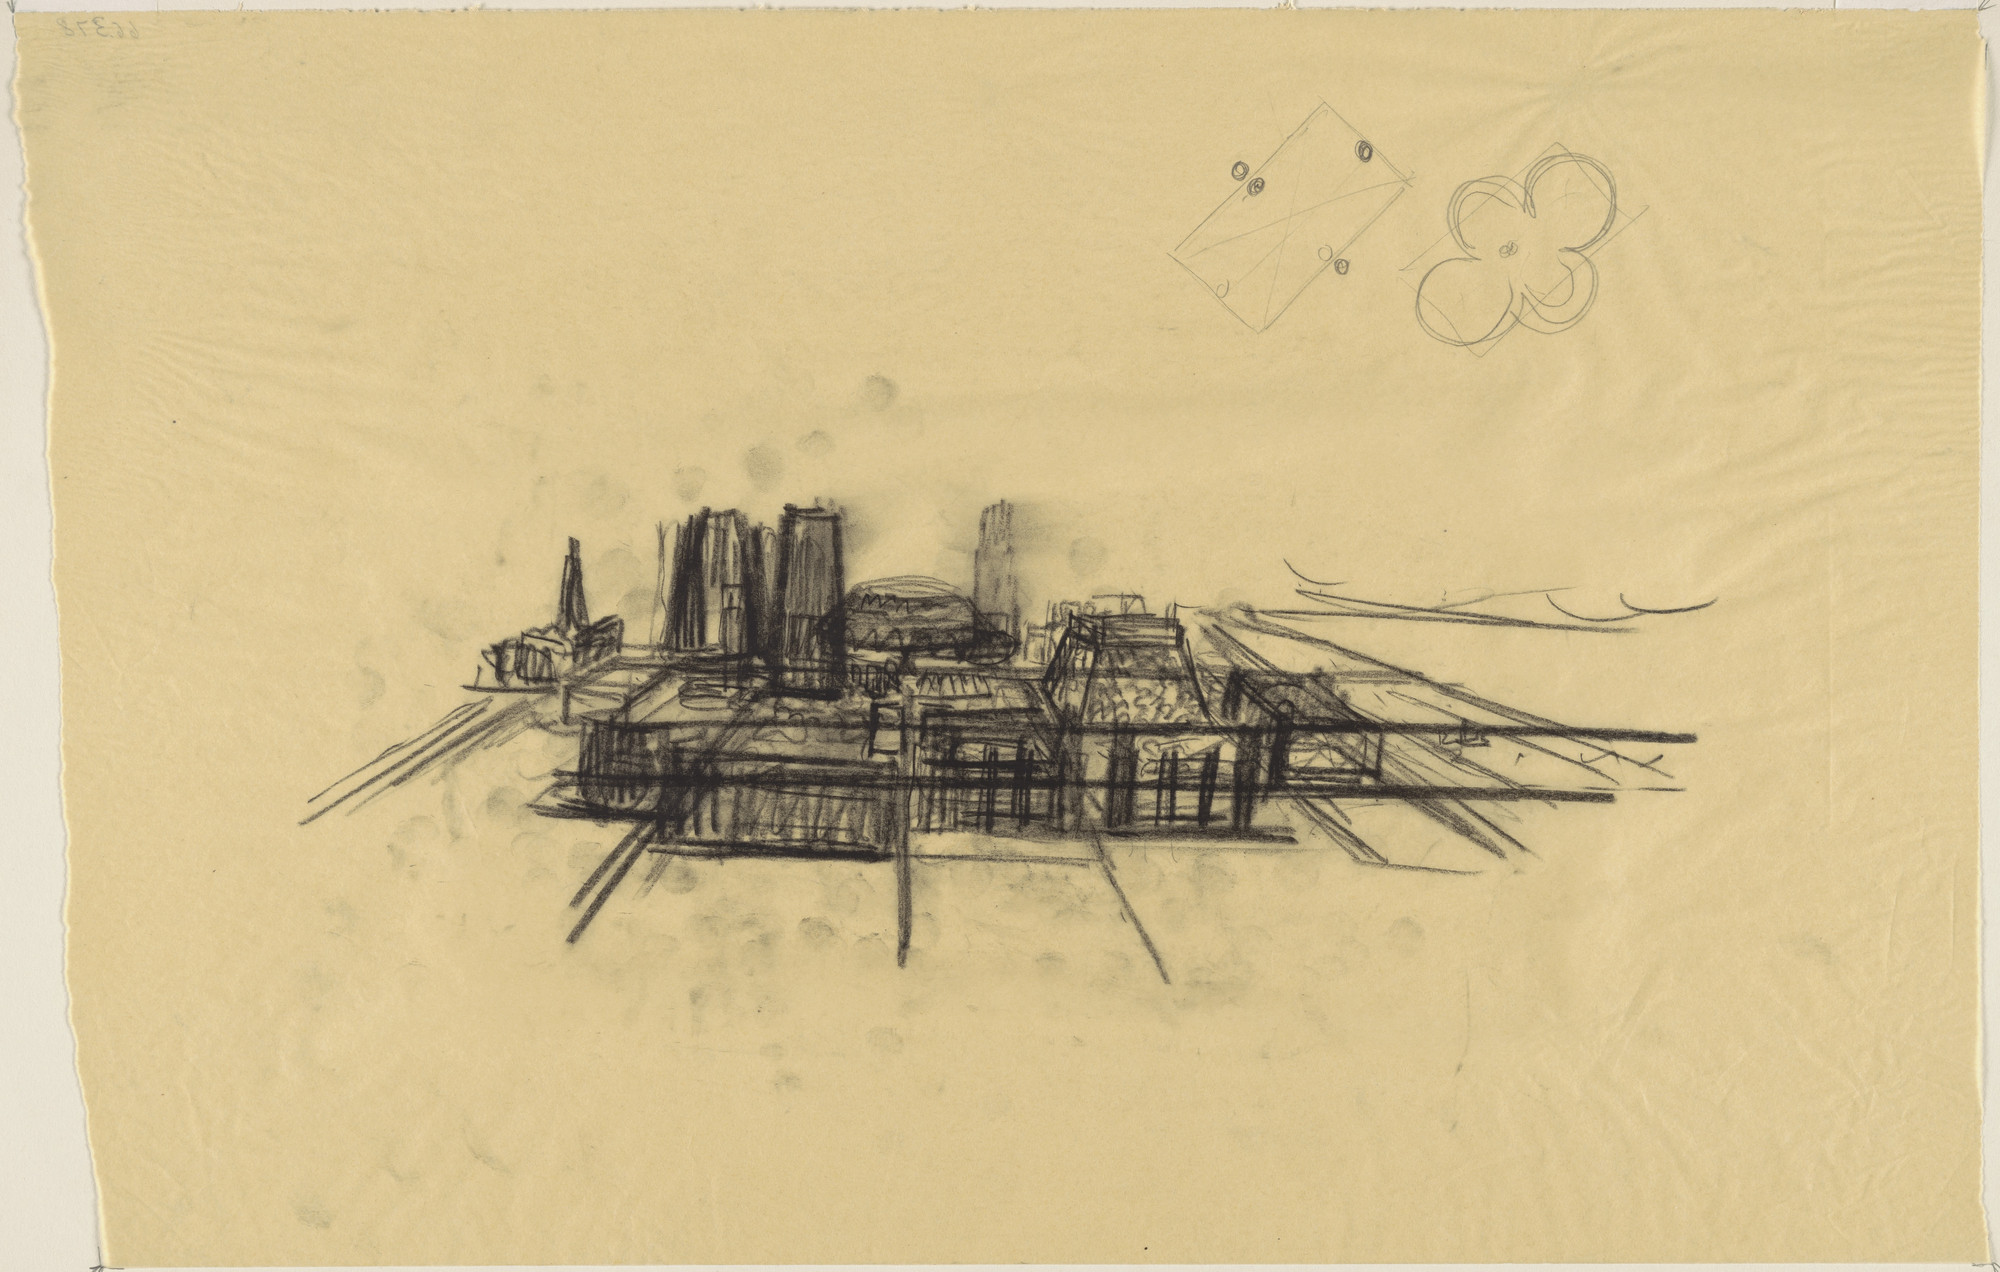 Louis I. Kahn. Civic Center Studies, project, Philadelphia, Pennsylvania, Aerial perspective sketch. 1957